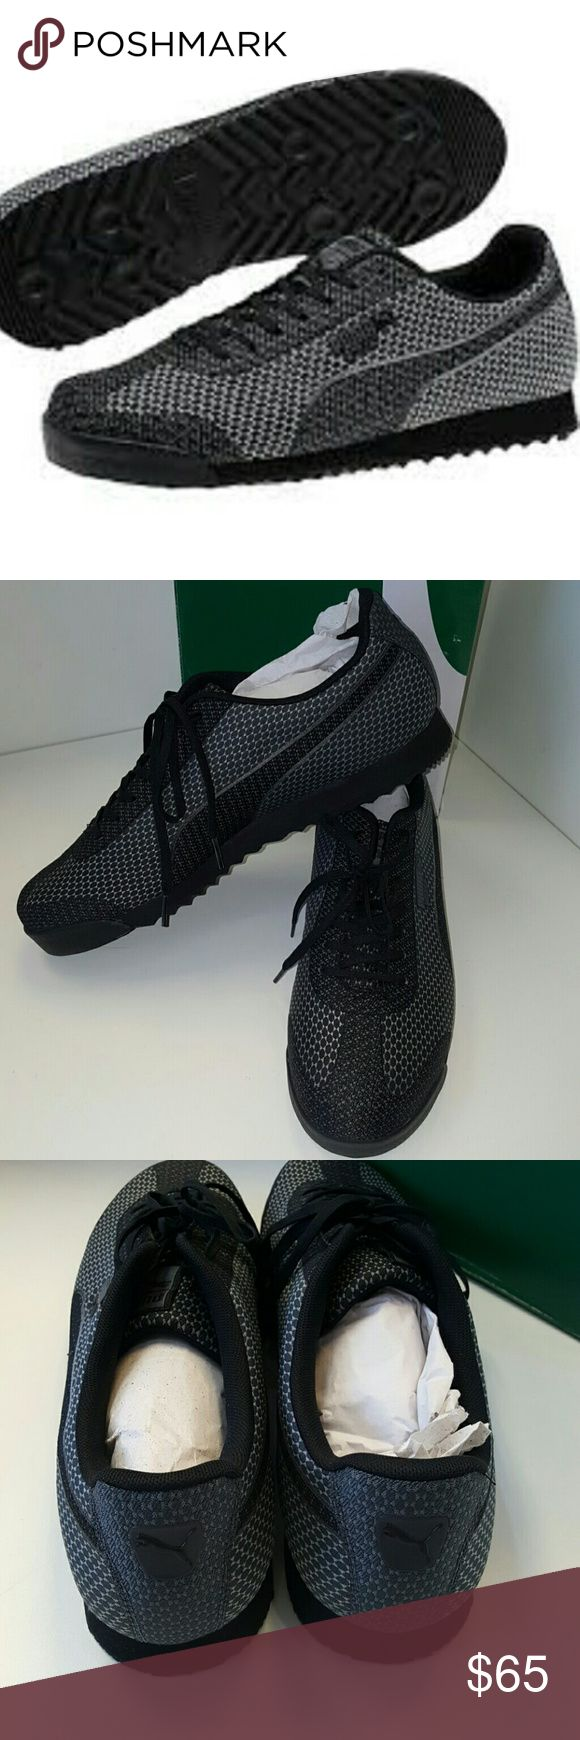 Men's Puma Shoes Brand new with tags men's black steel gray Sneaker. Puma Shoes Sneakers